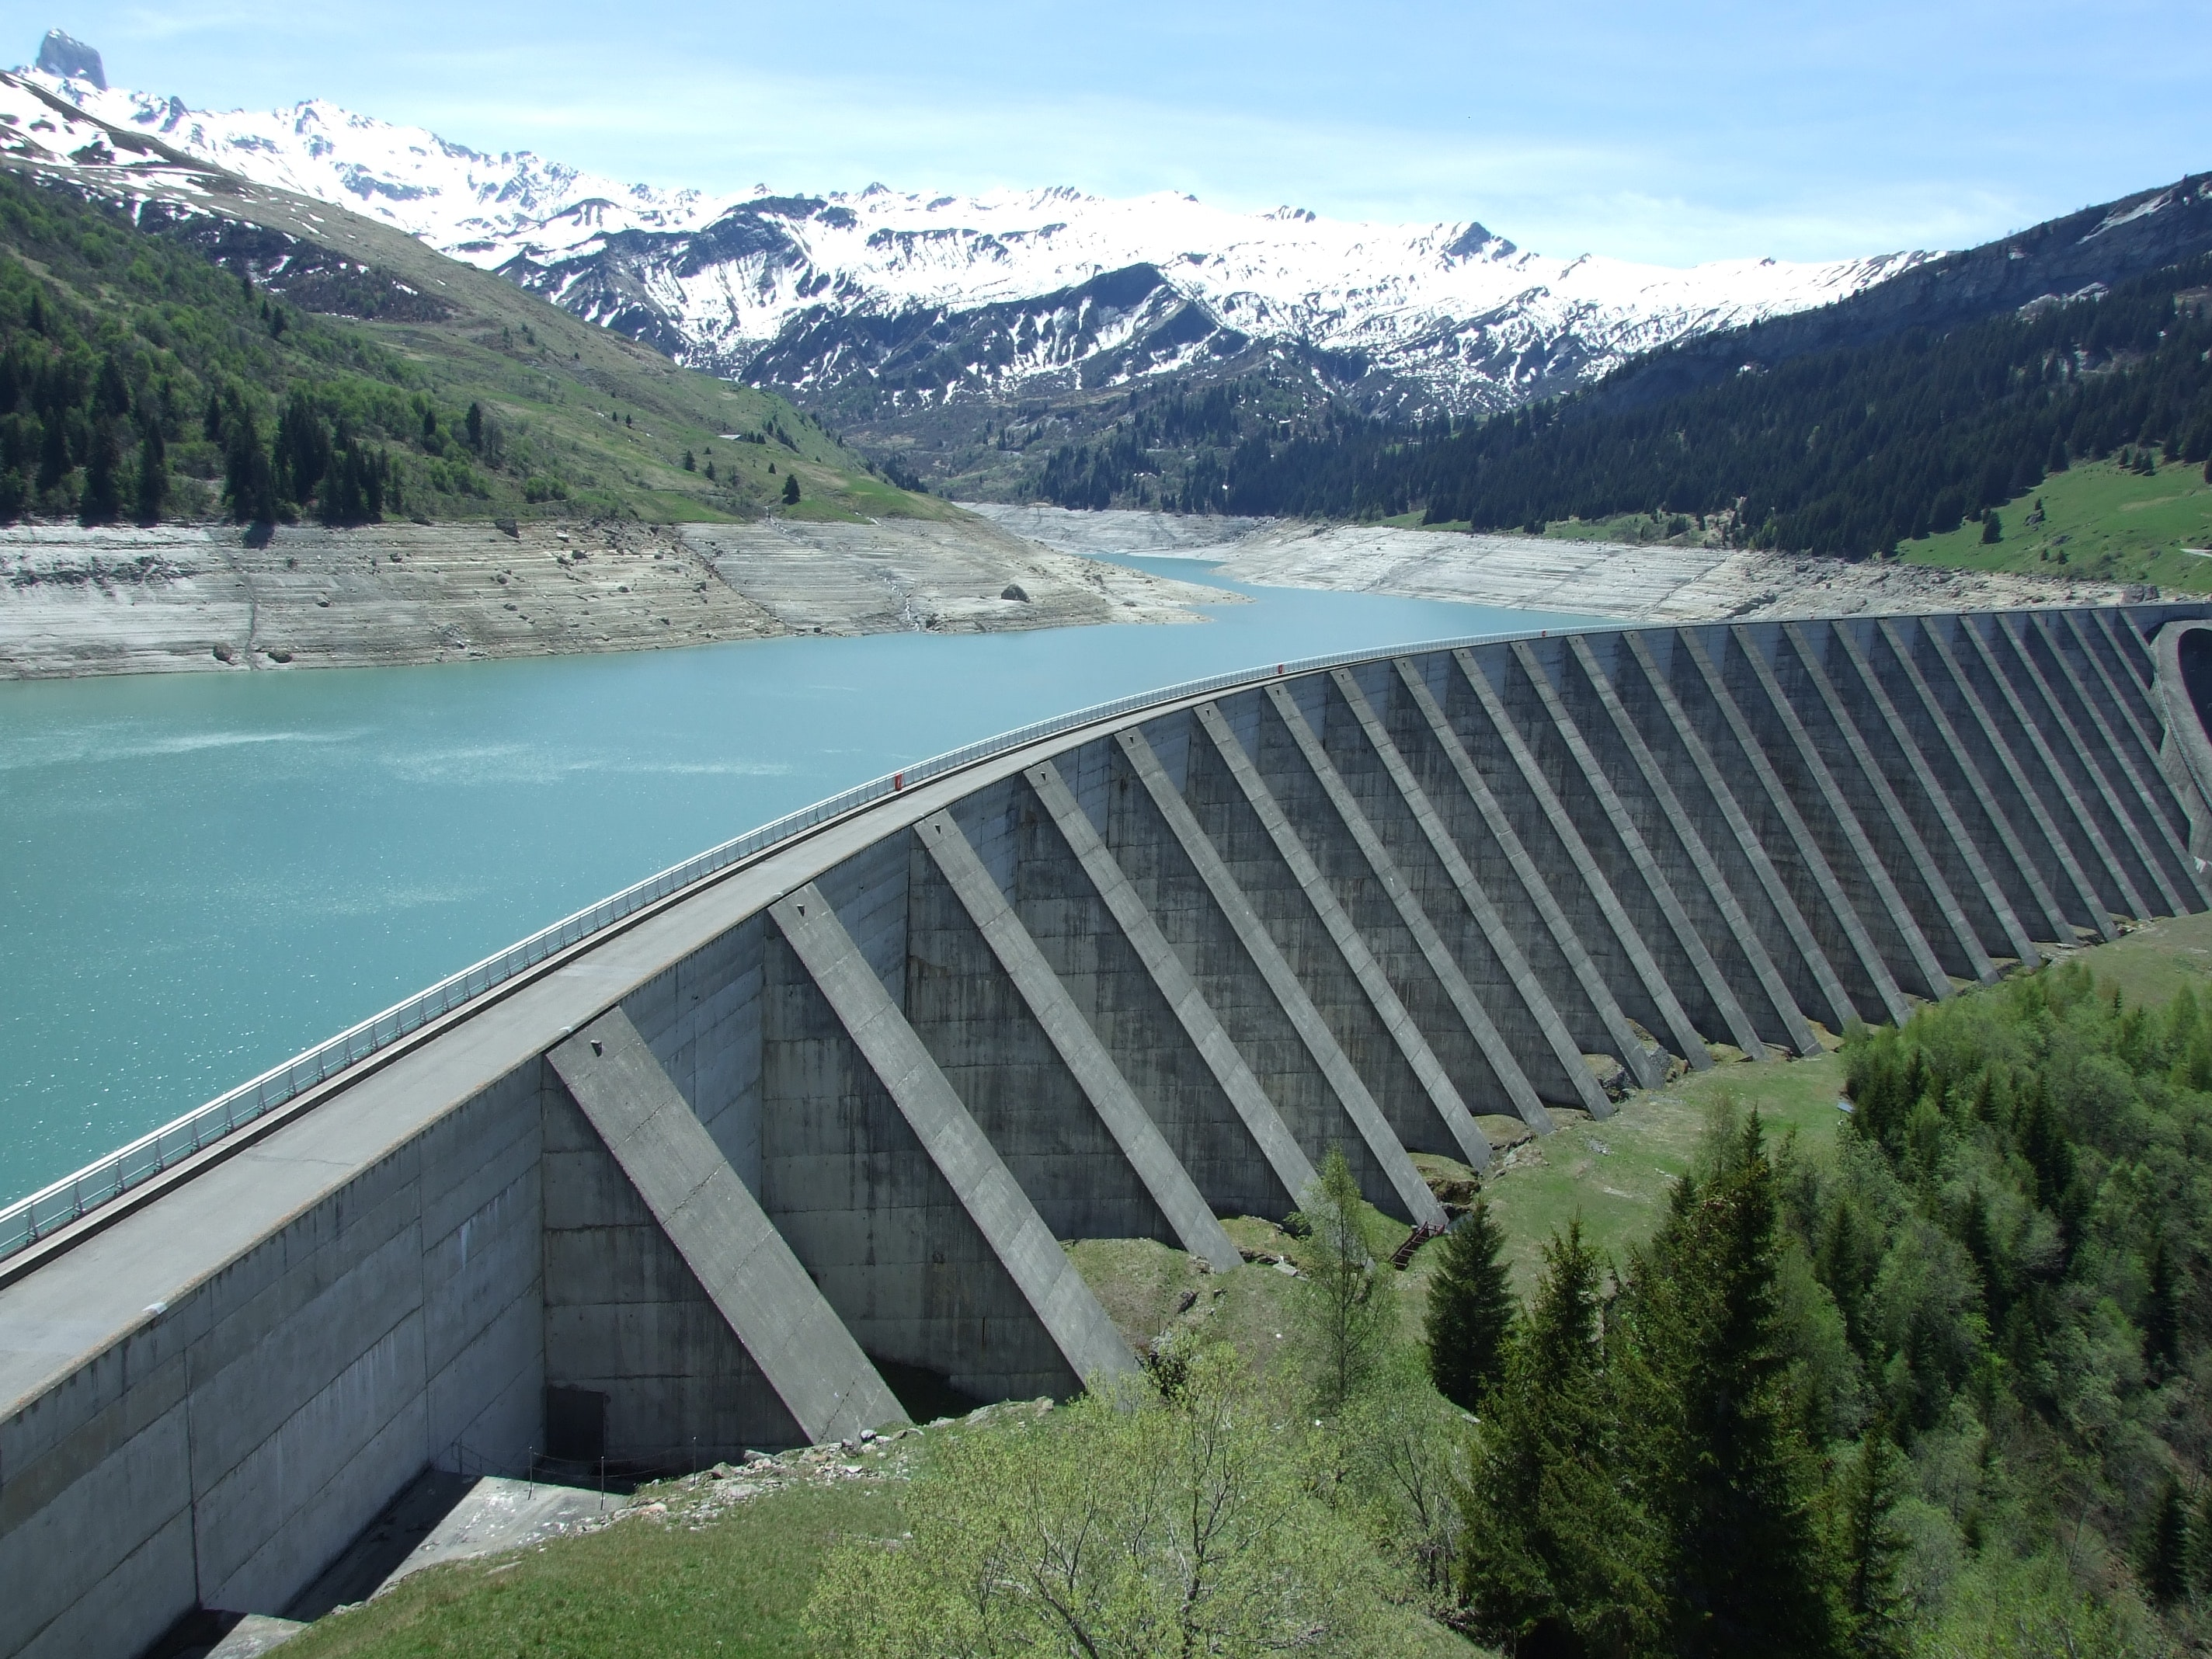 https://www.quora.com/What-is-a-tailrace-in-relation-to-a-hydro-power-plant